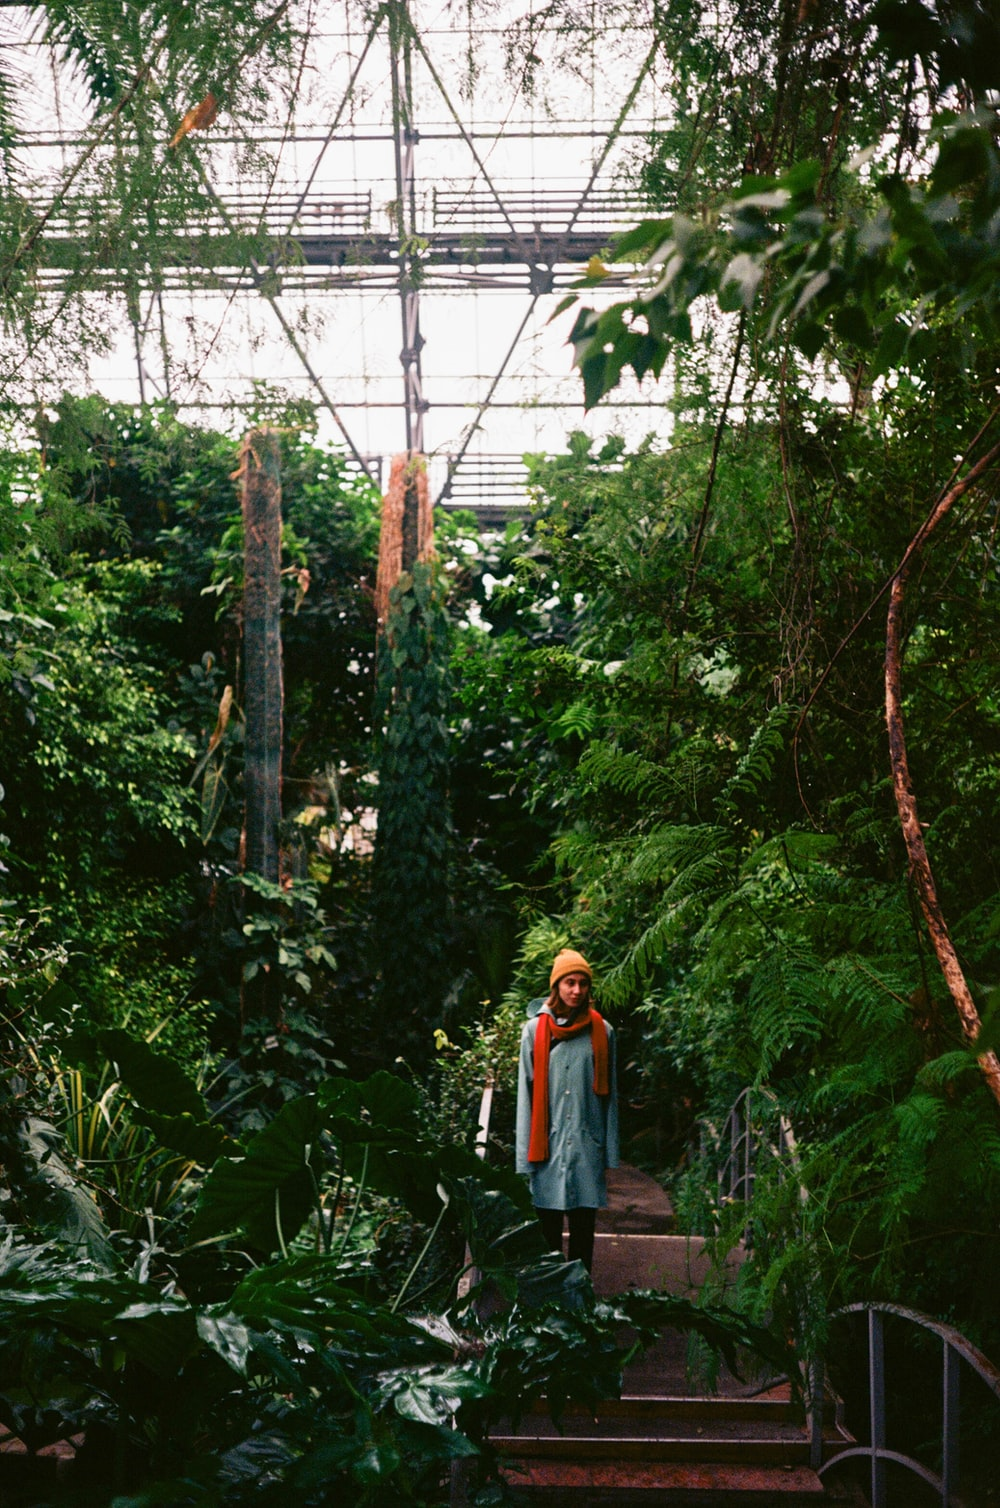 woman in orange jacket standing on forest during daytime